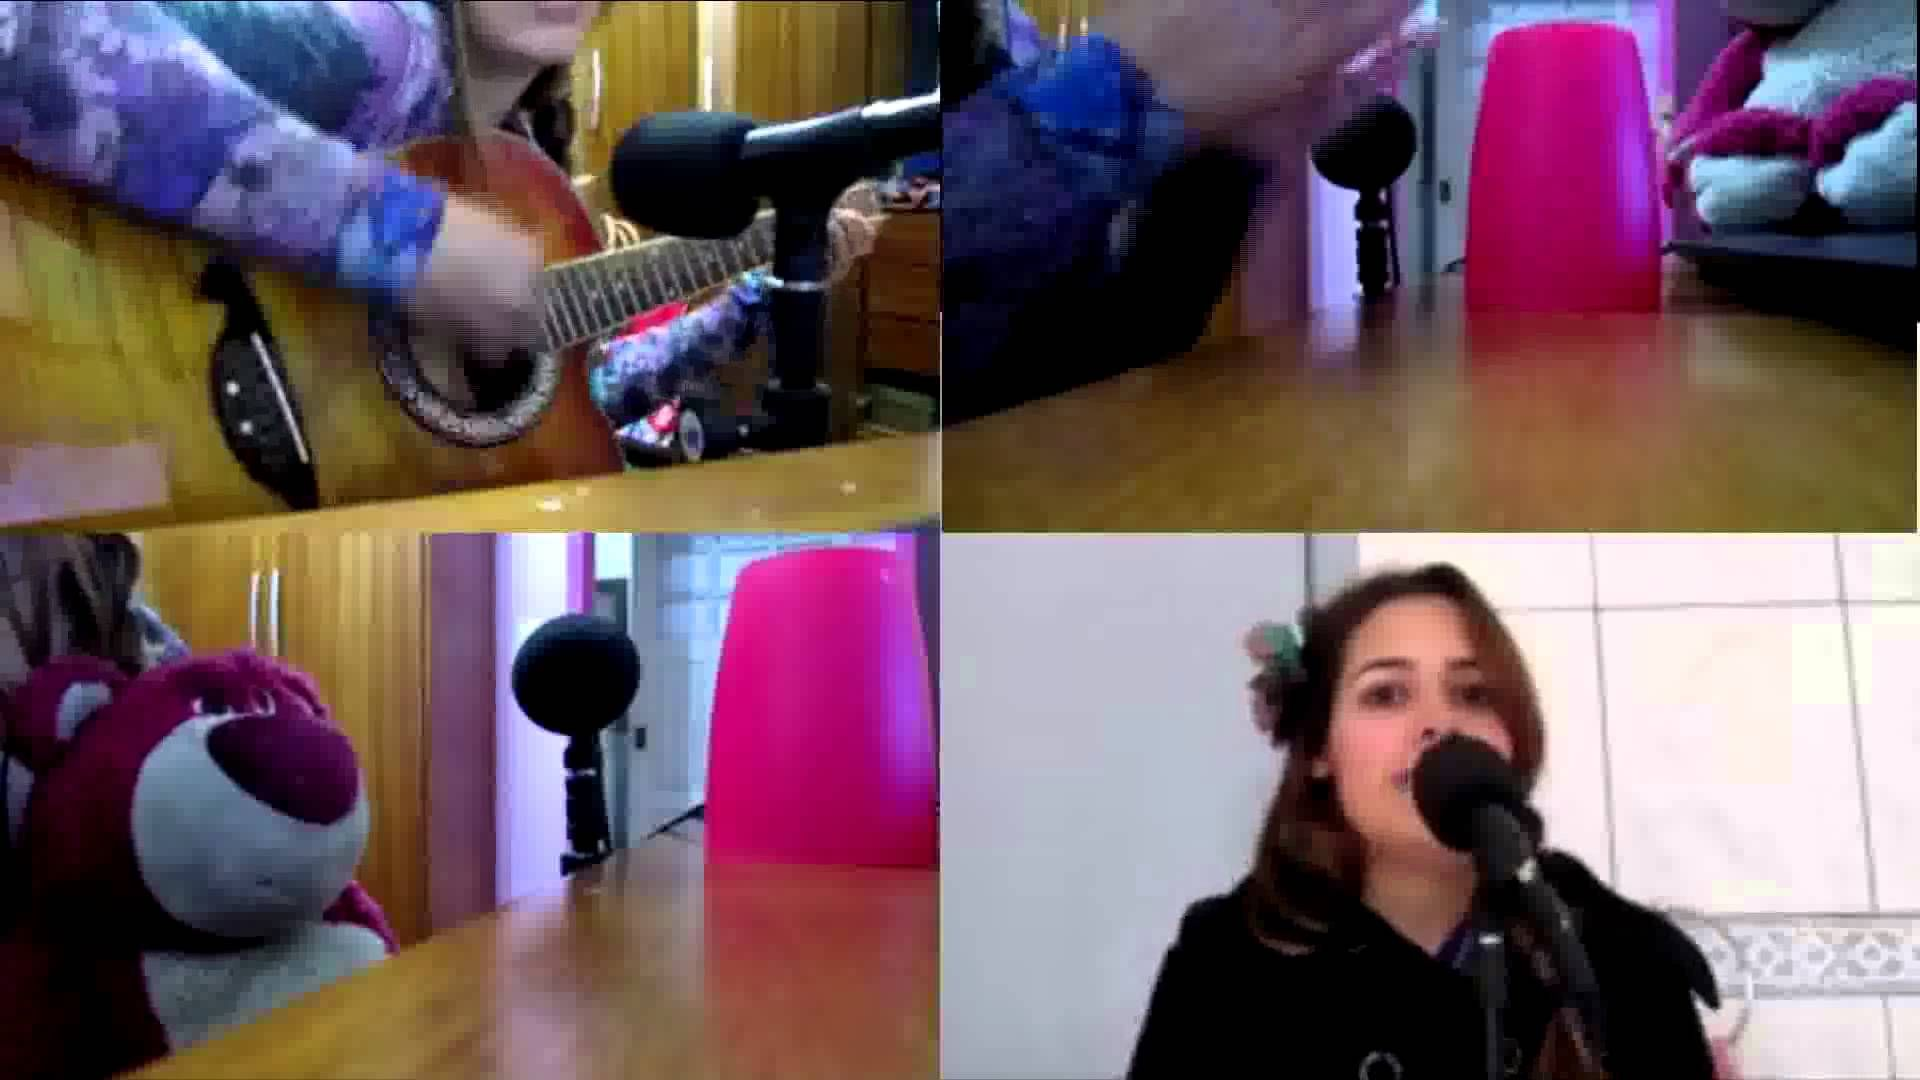 Me singing a Brazilian song mixed with the Cup Song http://youtu.be/ATbQf14USKs